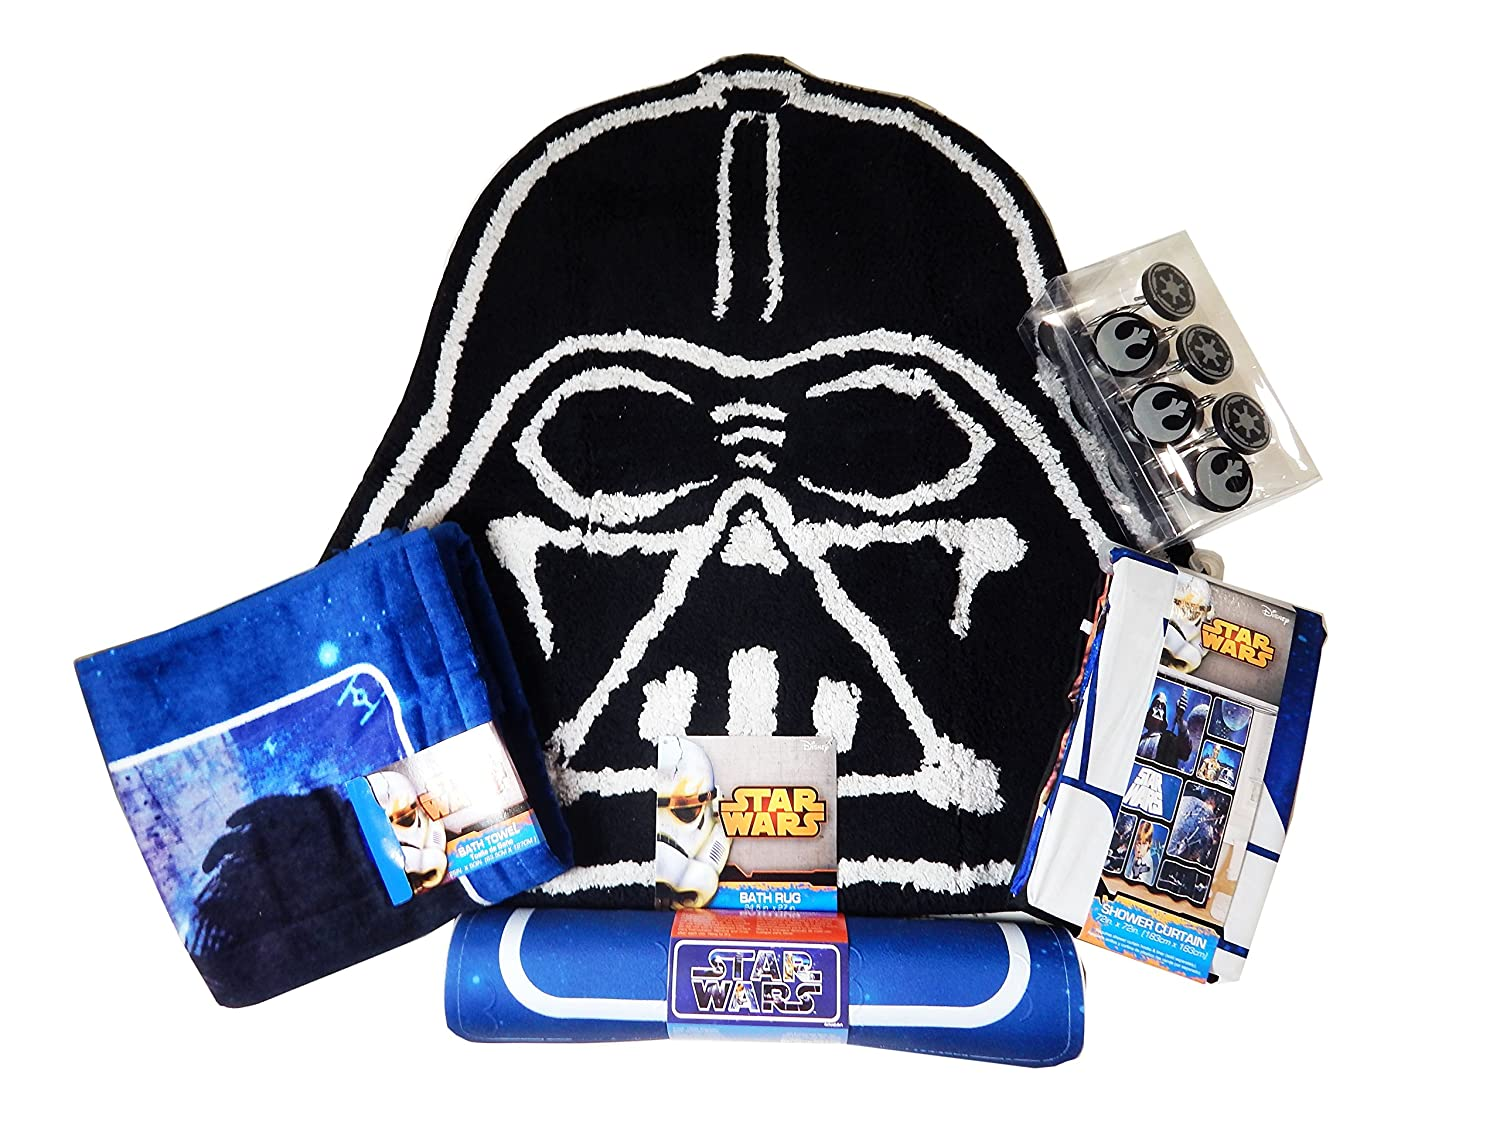 Disney Star Wars Bathroom Set, Shower Curtain, Hooks, Bath Rug, Bath Towel,  and Bath Tub Mat (Navy Star Wars Block)